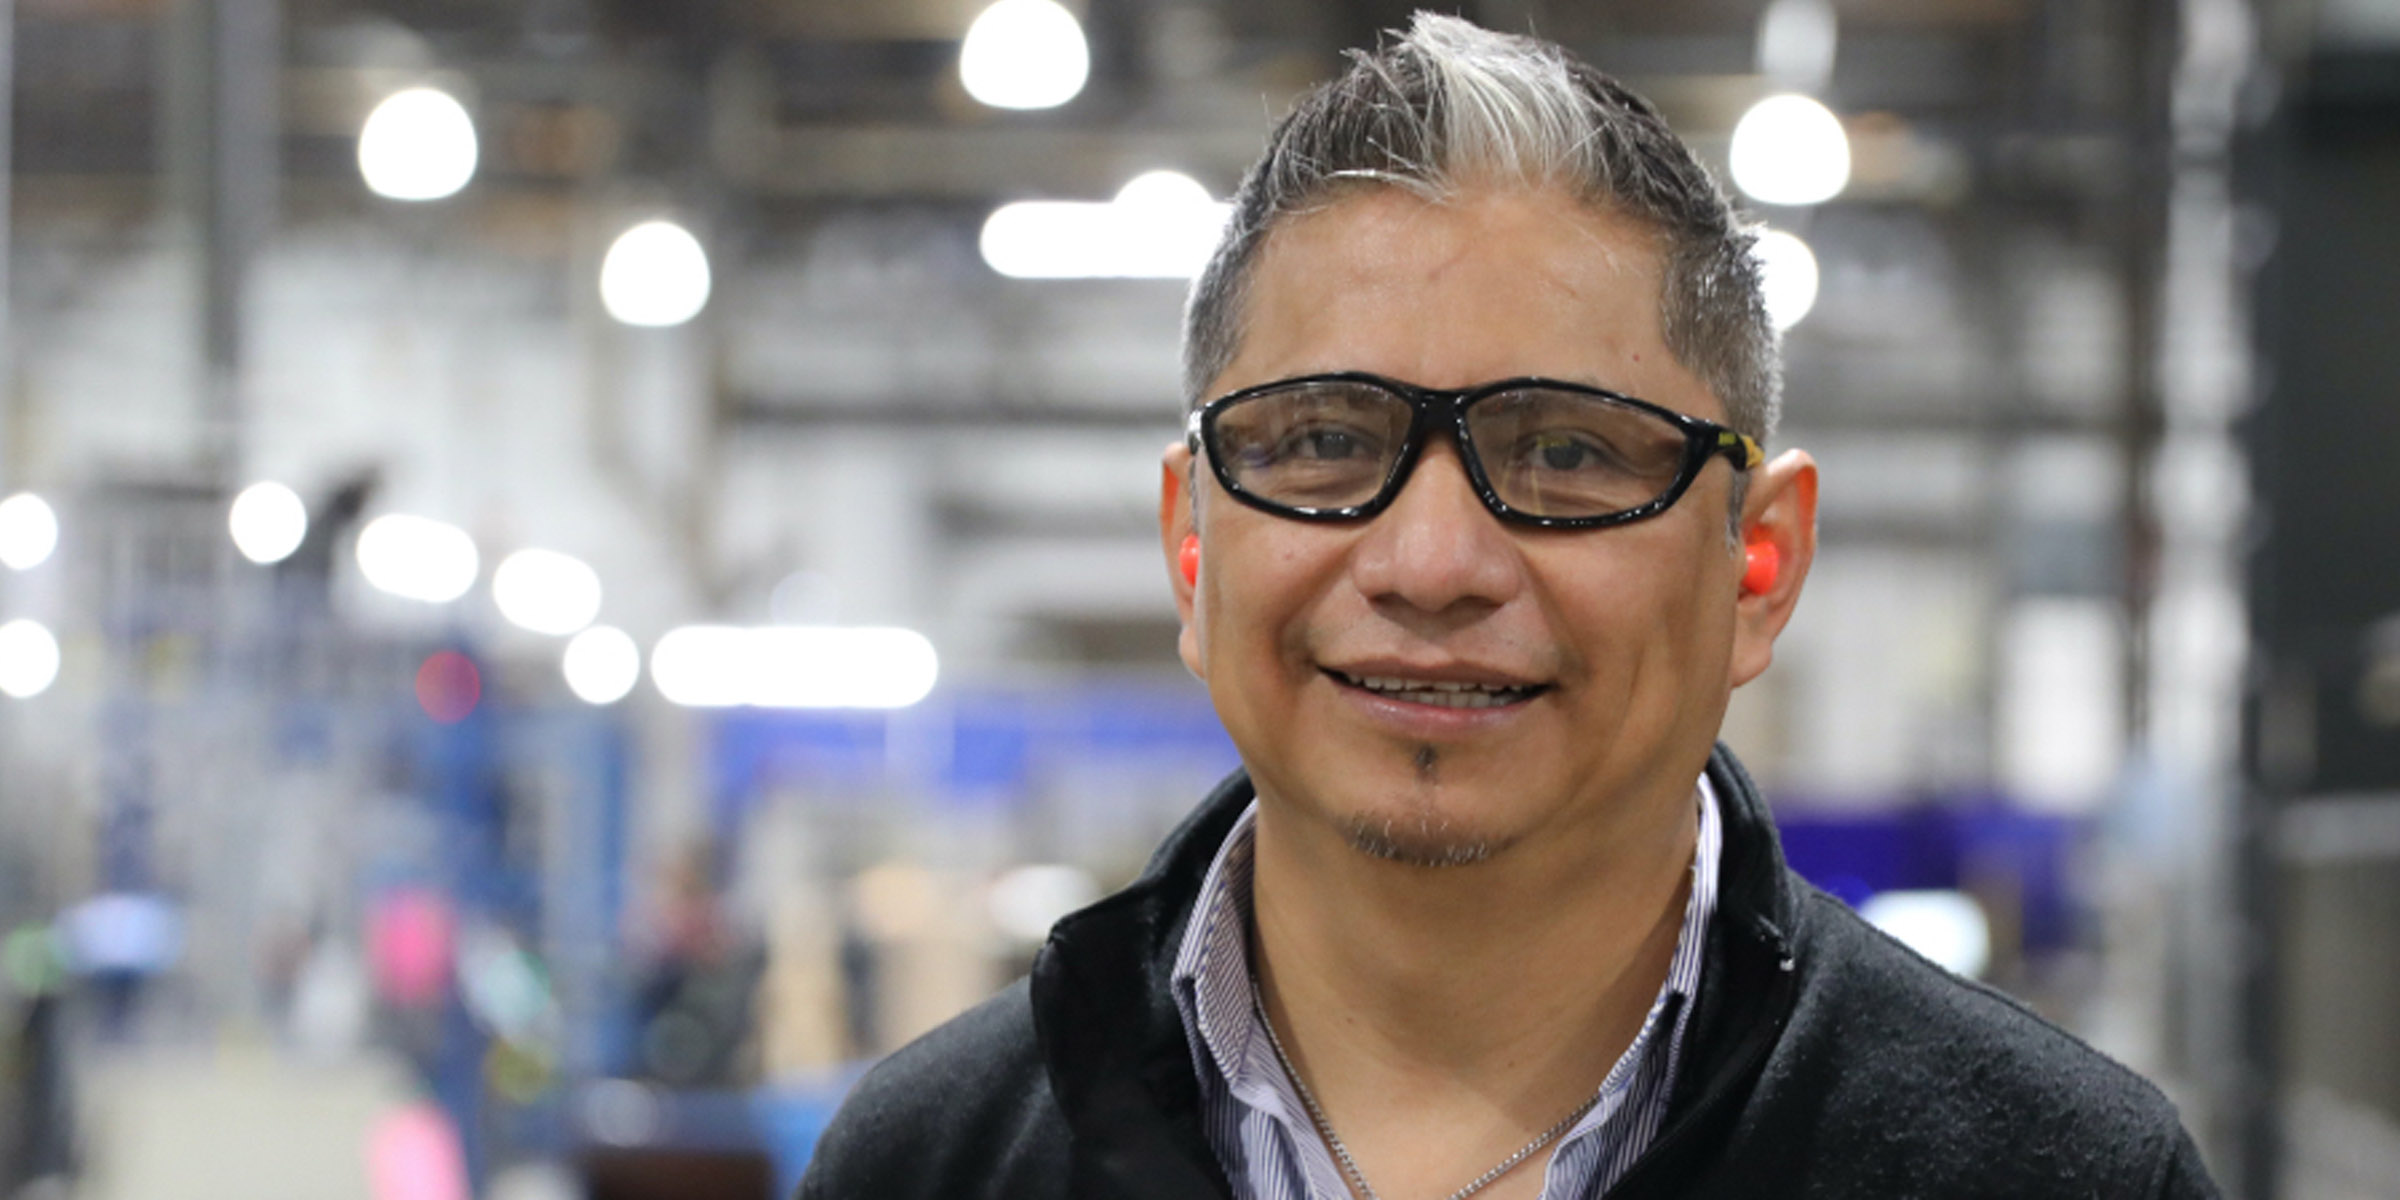 The Immigrant Who Started As A Janitor And Now Programs Laser-Cutting Machines!